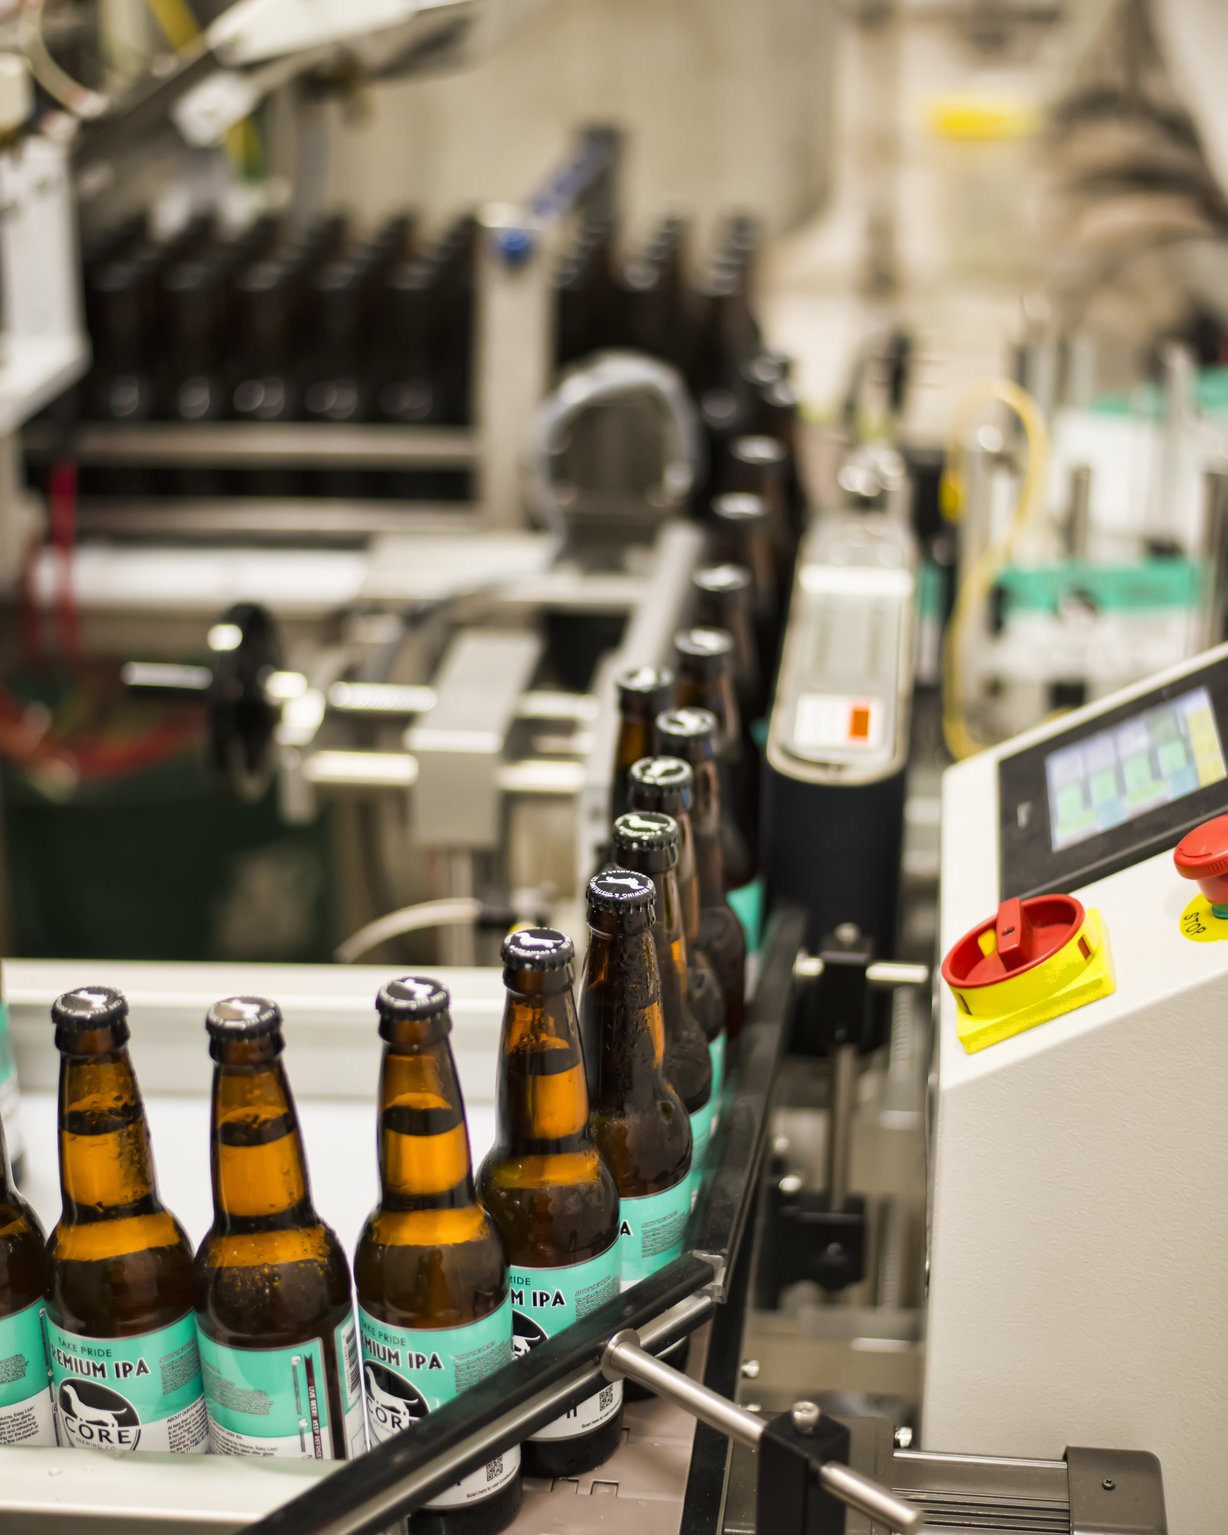 Core is one of the more popular microbrews produced in Northwest Arkansas. Production started in 2011.